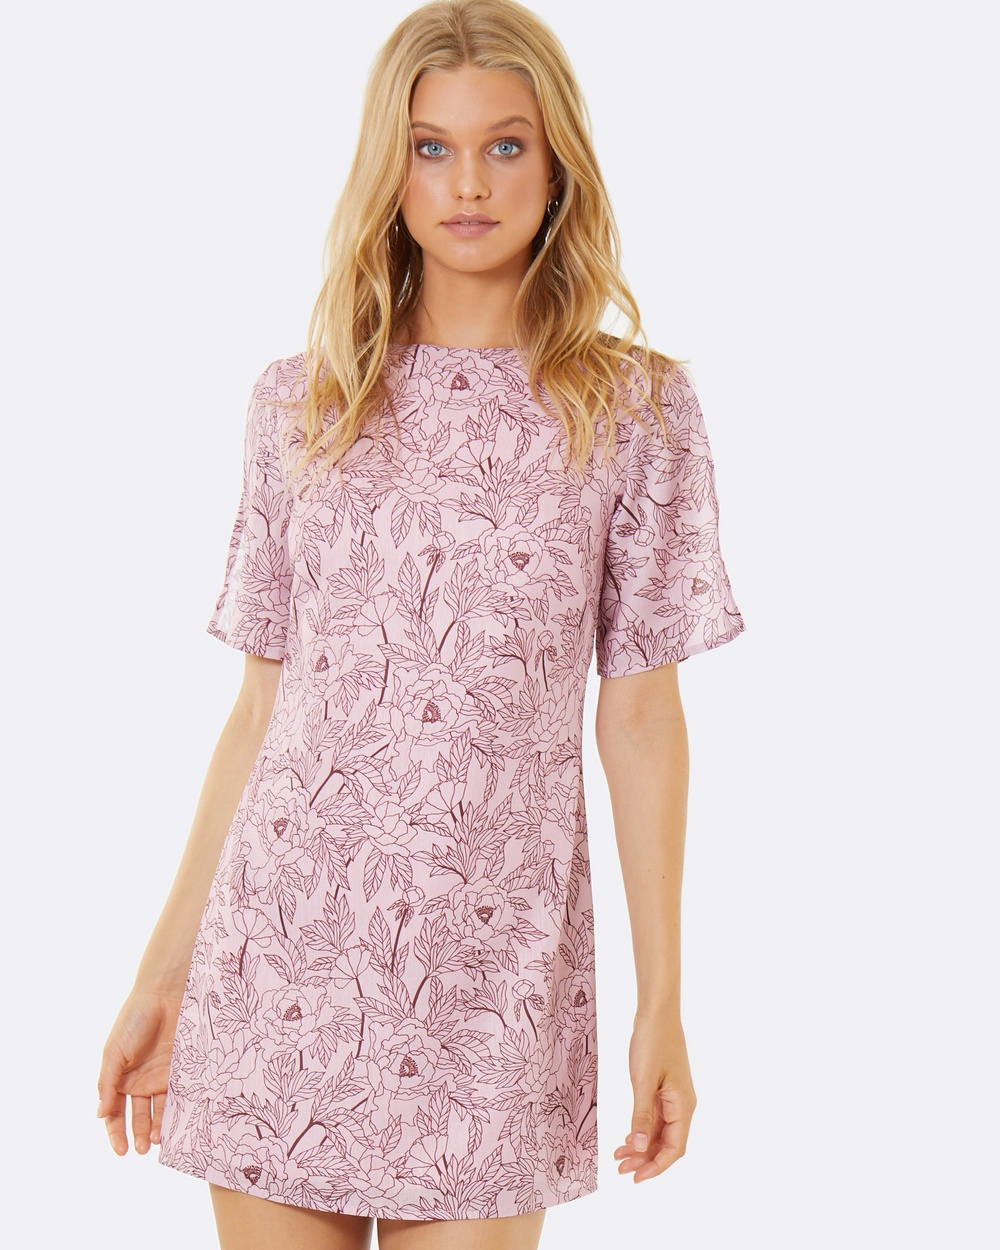 Calli Angelina Dress Printed Dresses Pink Angelina Dress